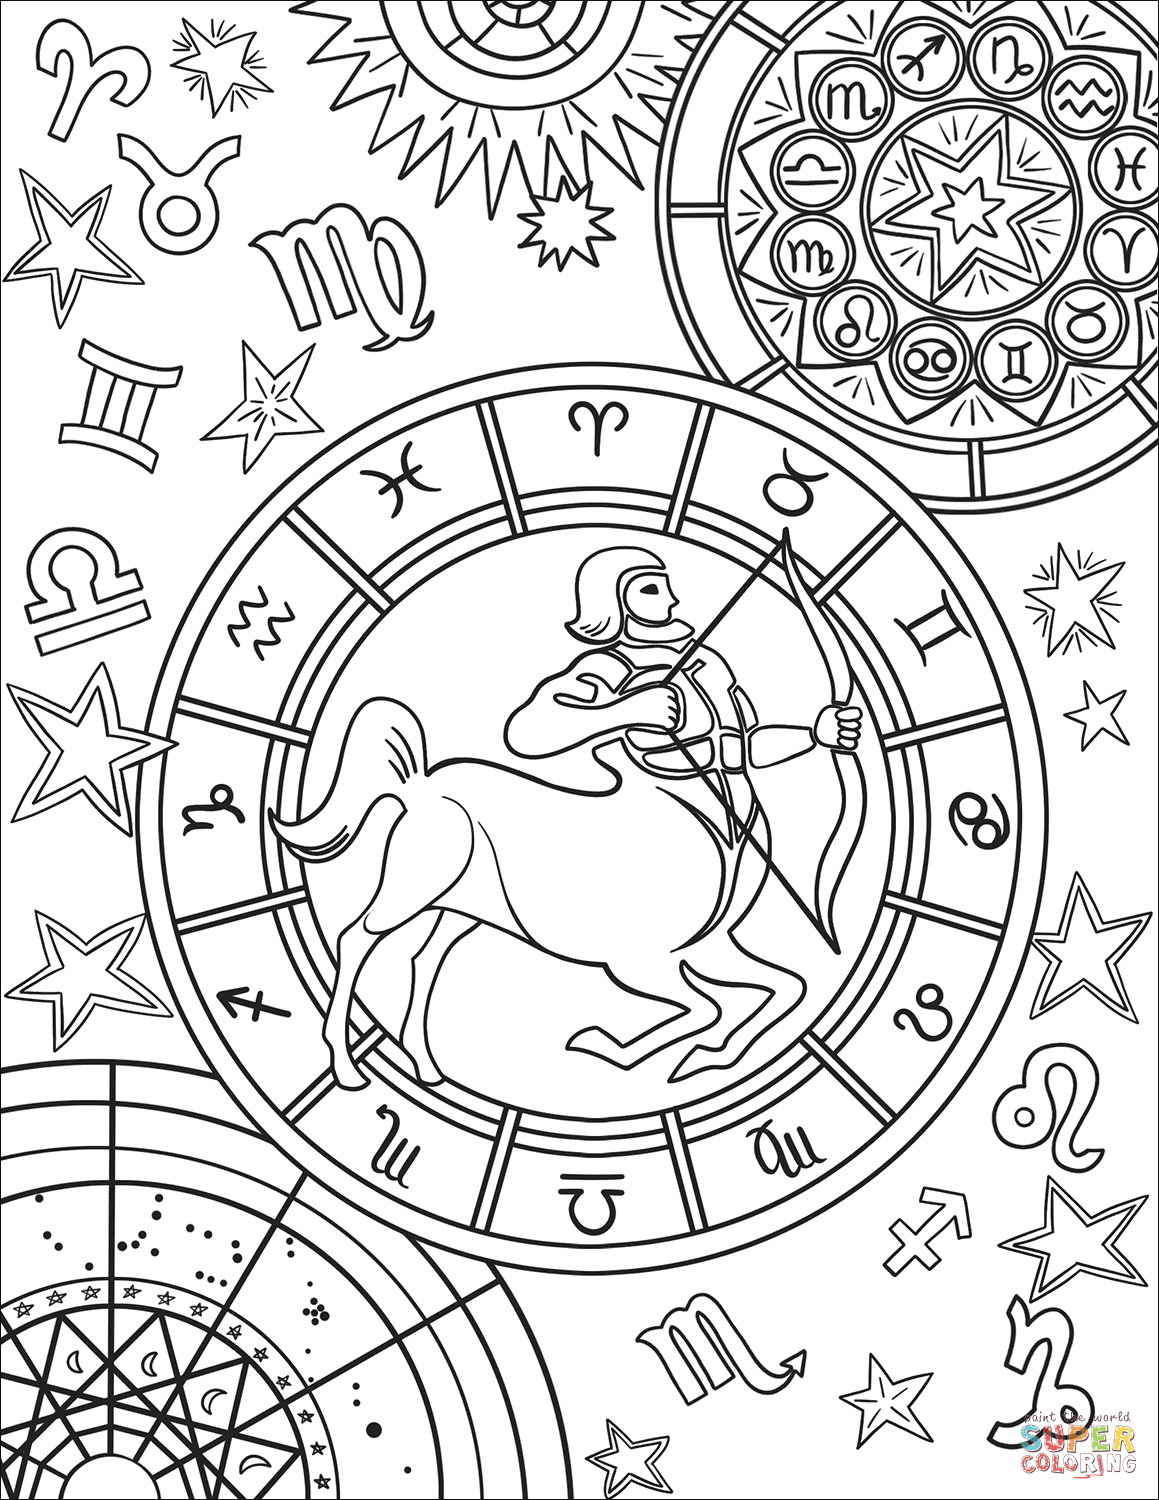 zodiac signs coloring pages zodiac signs coloring pages stackbookmarksinfo zodiac coloring pages signs